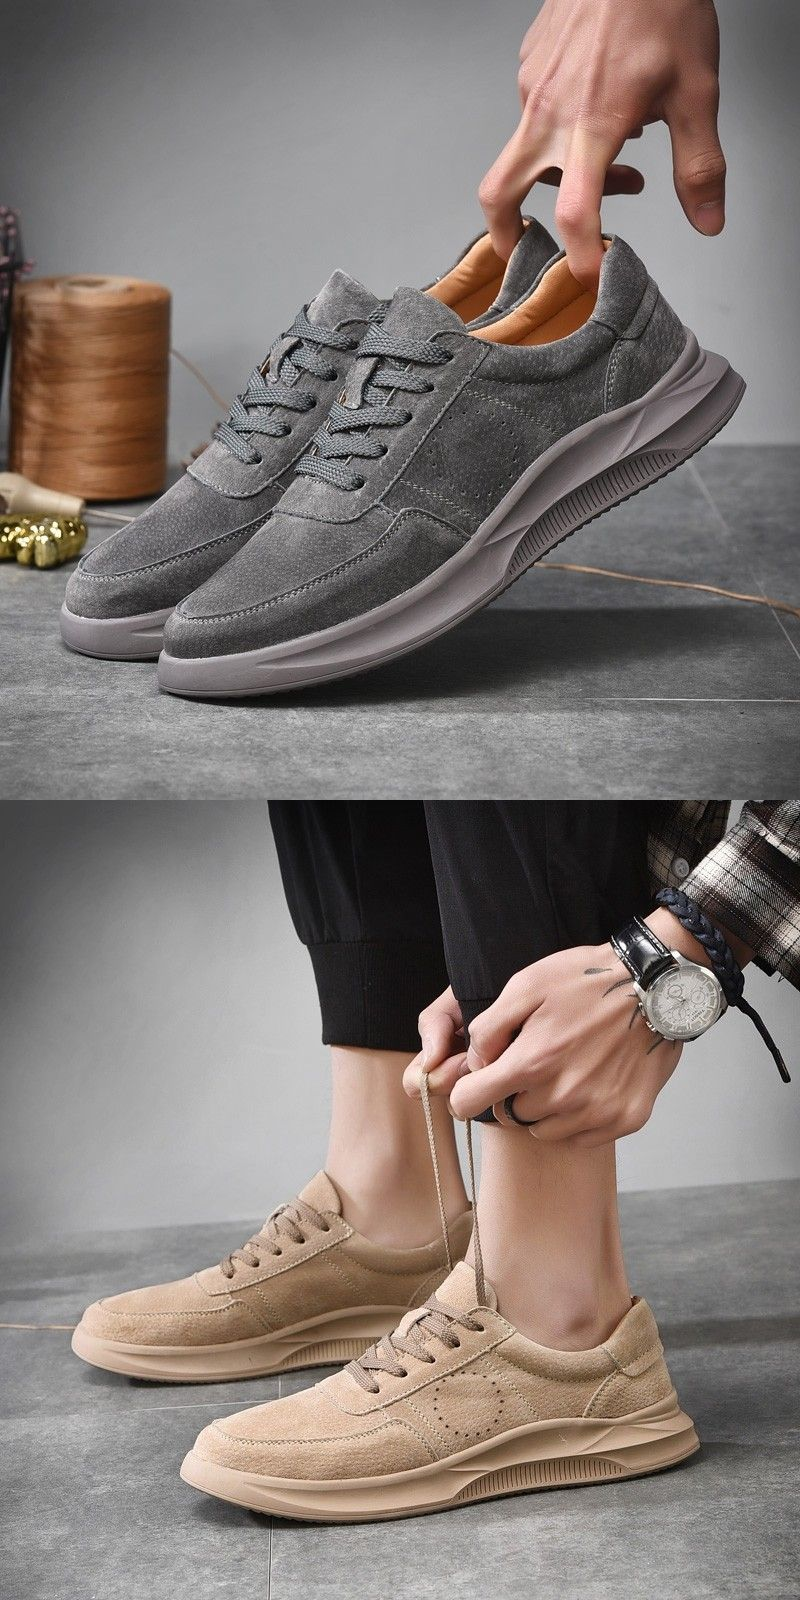 b32fda5b US $28.2 Click to buy> Prelesty New Classic Suede Leather Fashion Thick  Outsole Sneaker Shoes